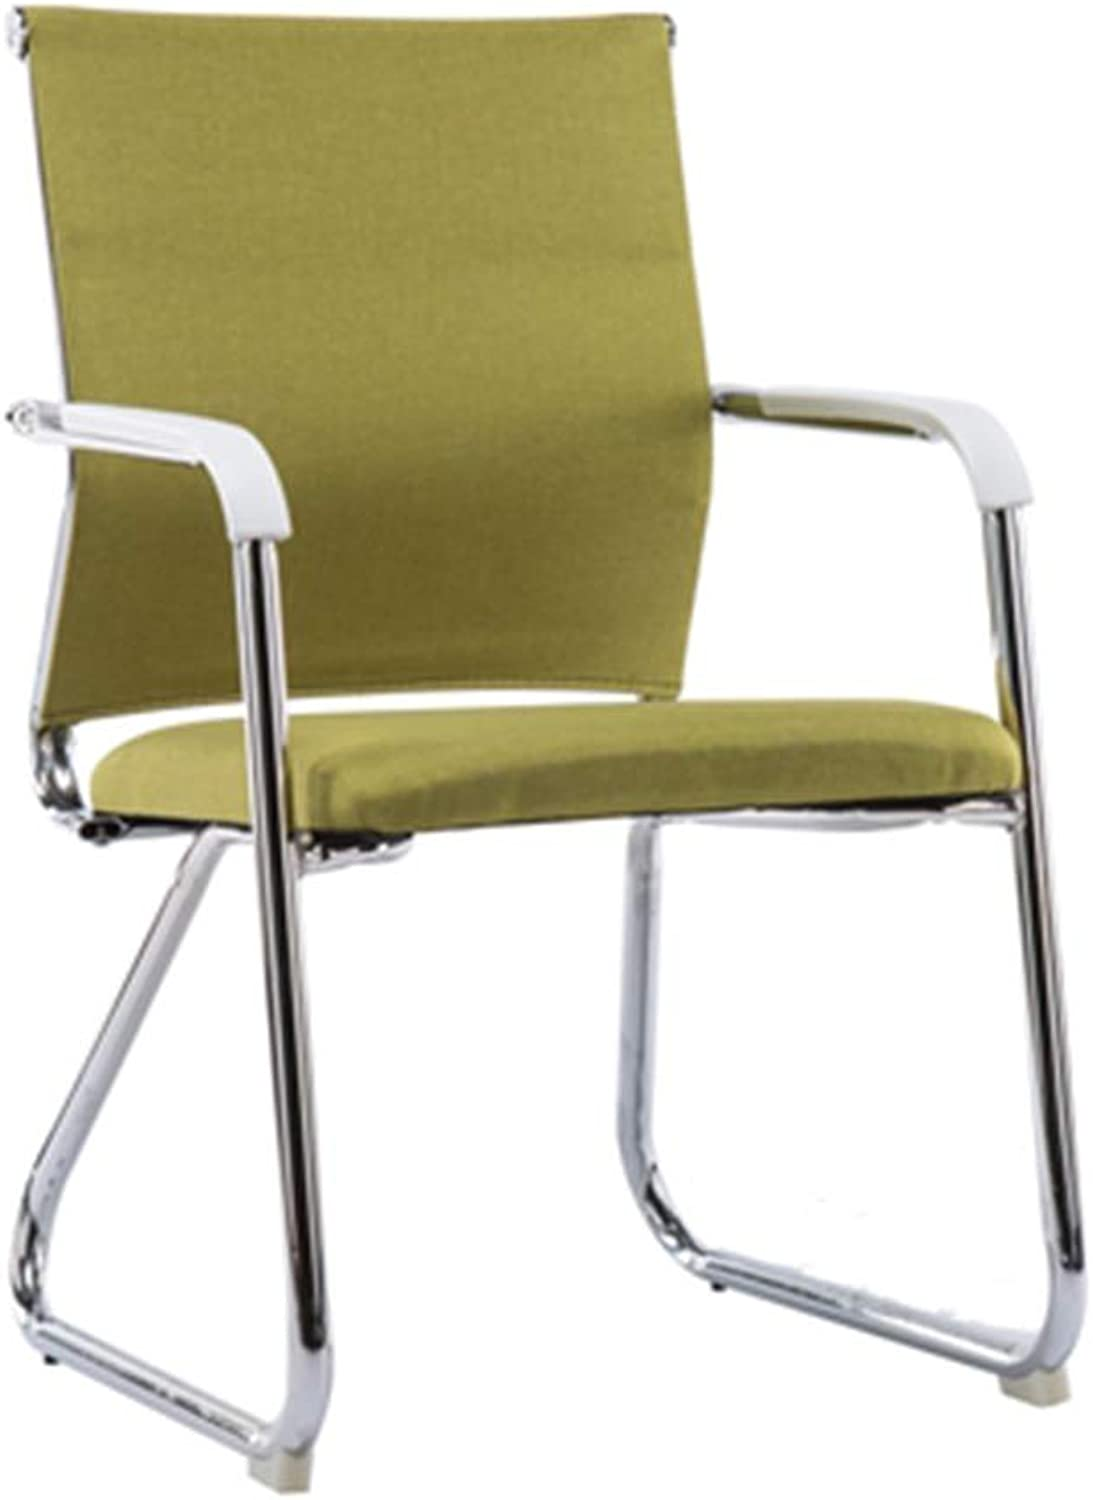 Comfortable Chair, Soft Easy to Clean Chair Dorm Room School Chair Hotel Hairdresser Bar Chair Computer Game Chair (color   Green)